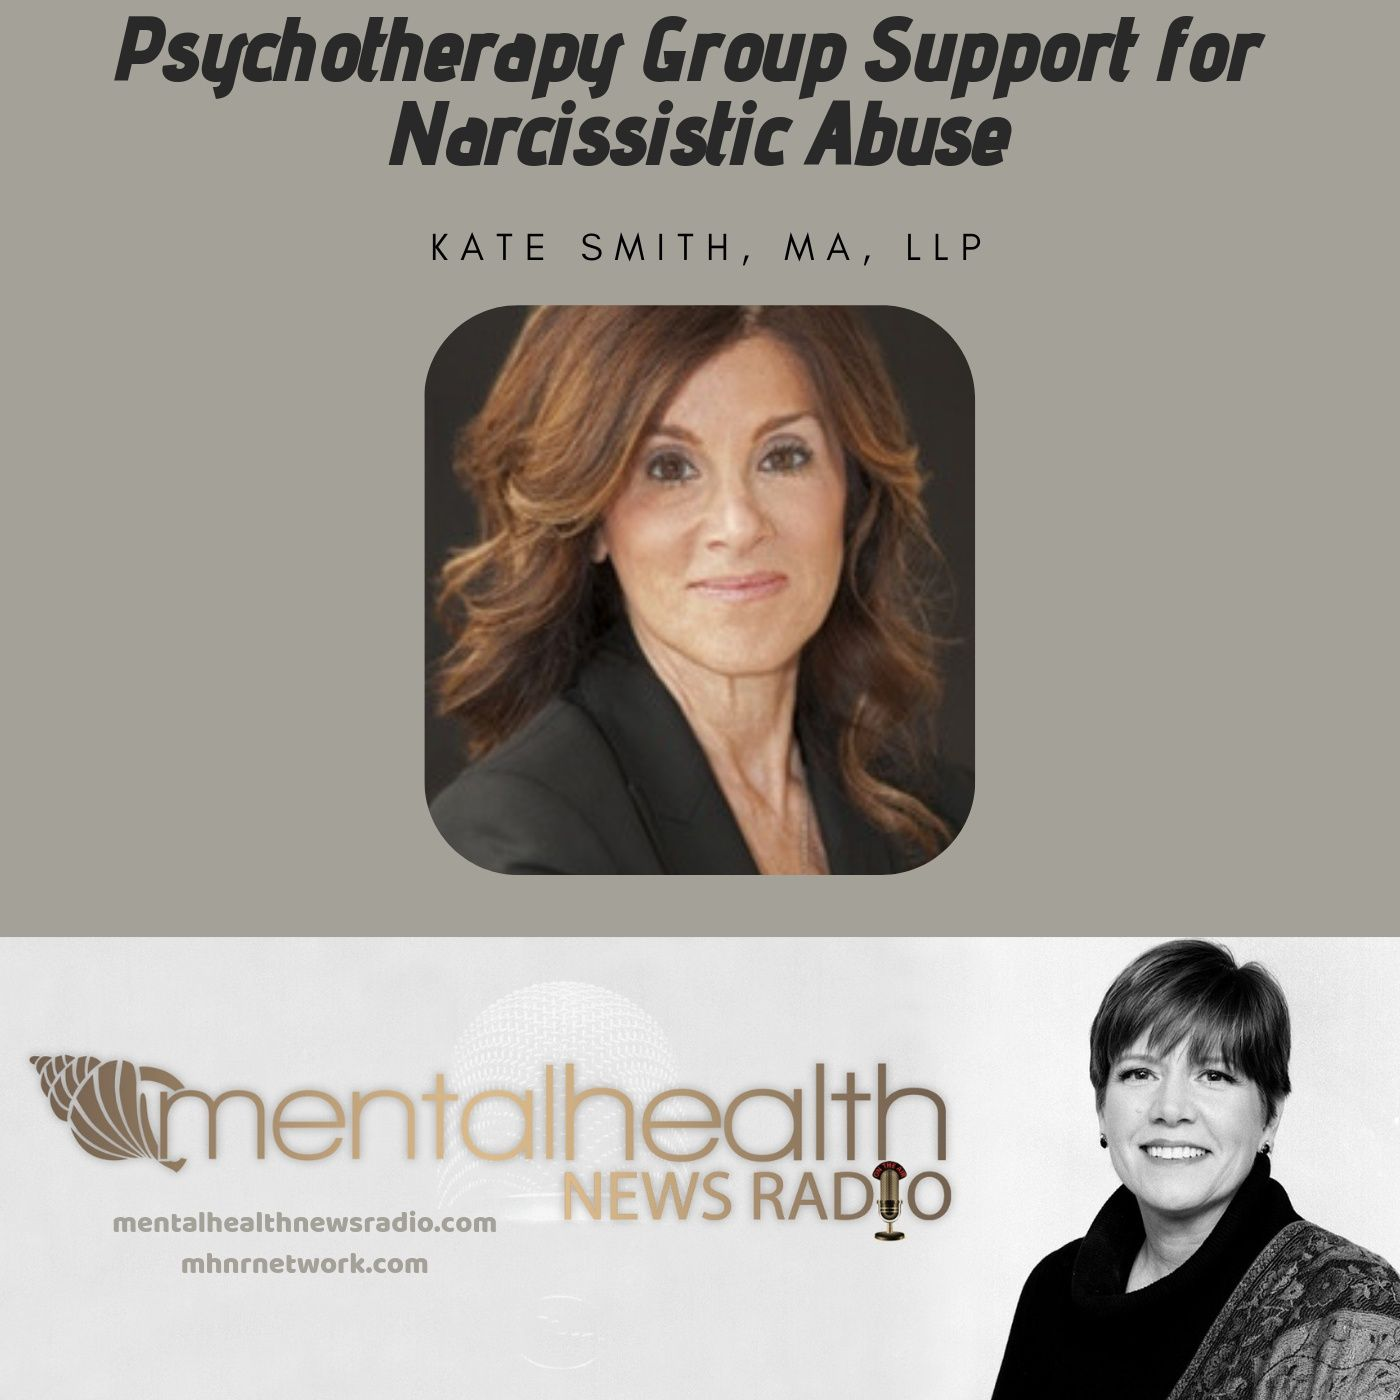 Mental Health News Radio - Psychotherapy Group Support for Narcissistic Abuse